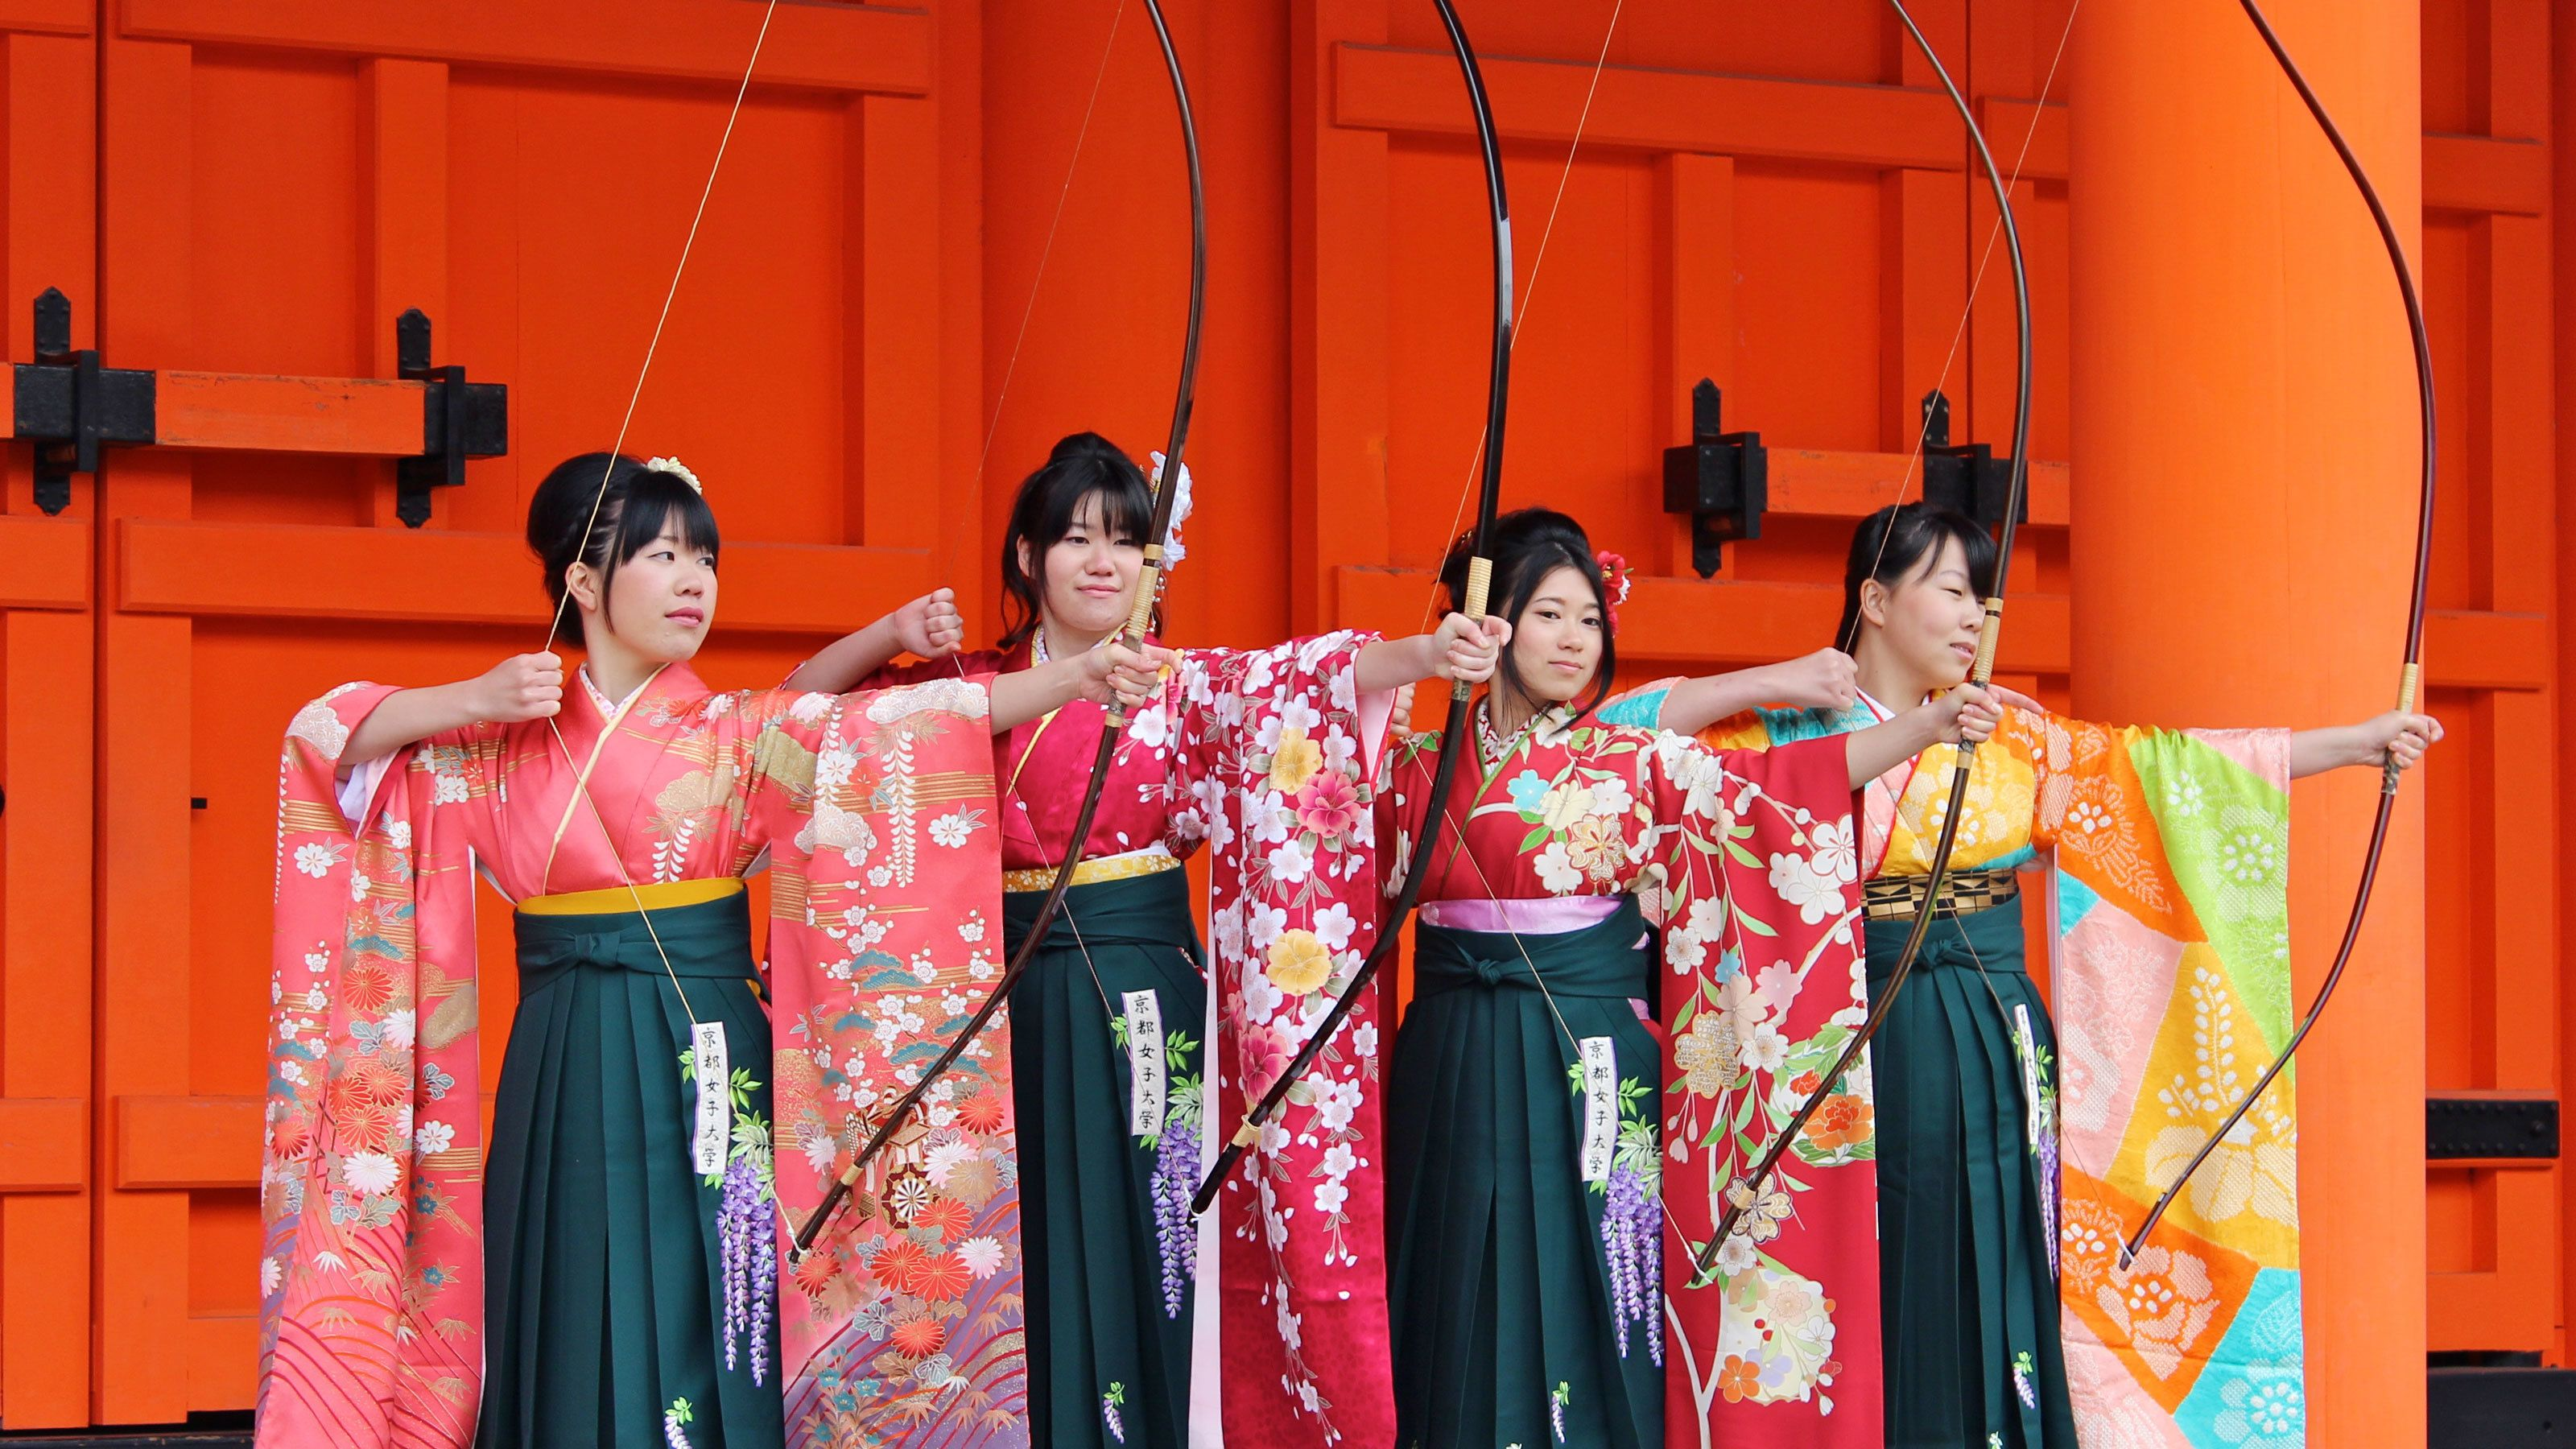 Kyoto - City of Culture Small Group Afternoon Tour